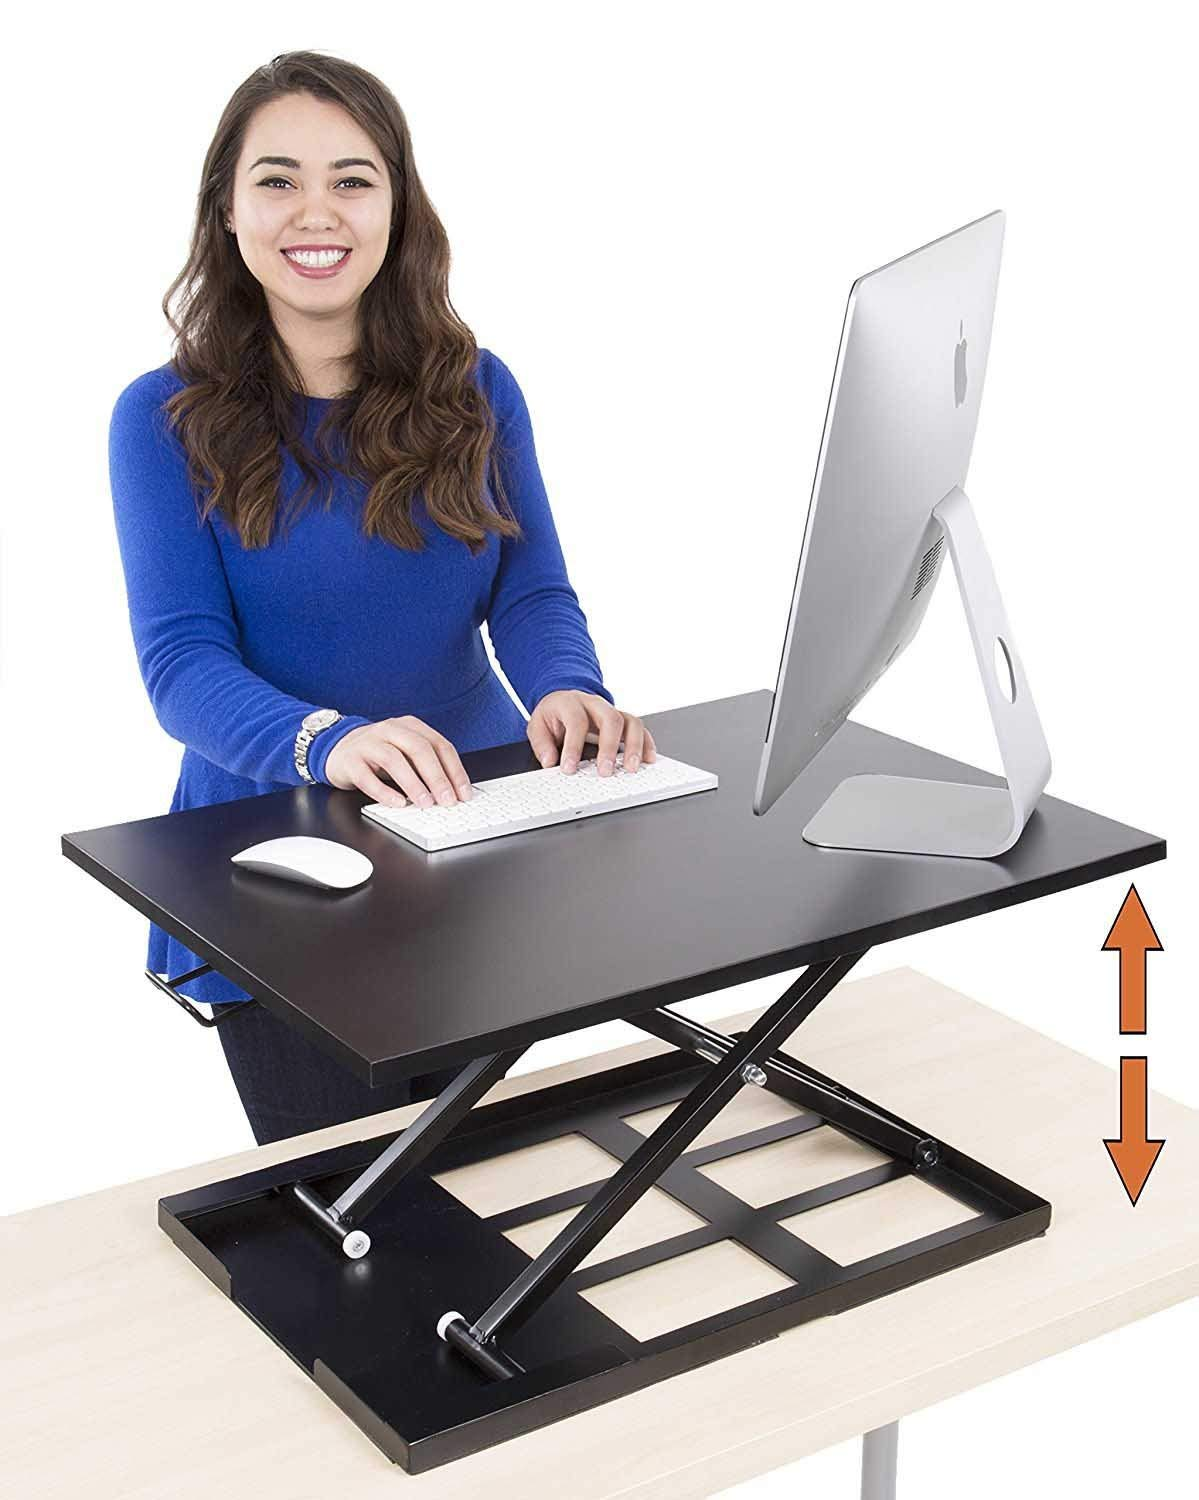 Best Adjustable Standing Desk - Xtreme-Pro Height Adjustable Desk Converter - Size 28in x 20in - Instantly Convert Any Desk to a Sit/Stand up Desk to Improve Posture (Black)